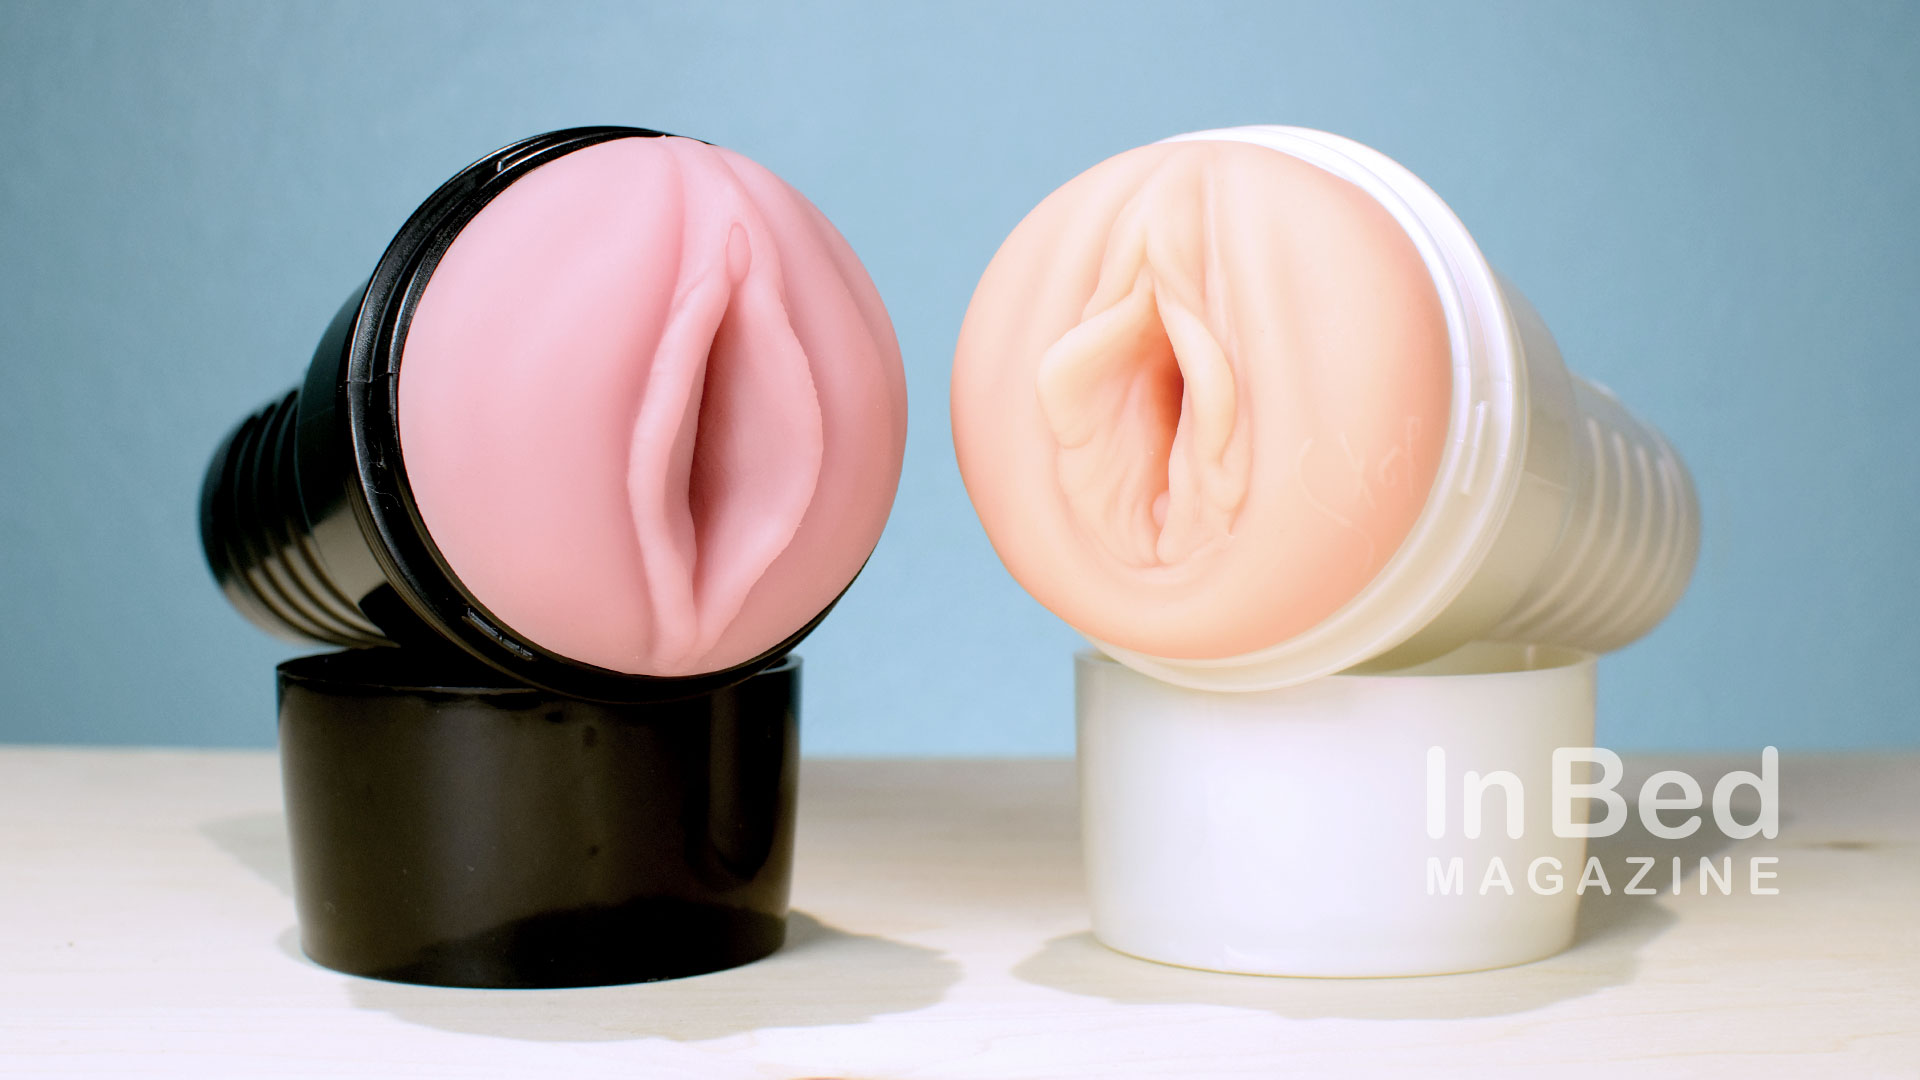 One Year Warranty Fleshlight Male Pleasure Products